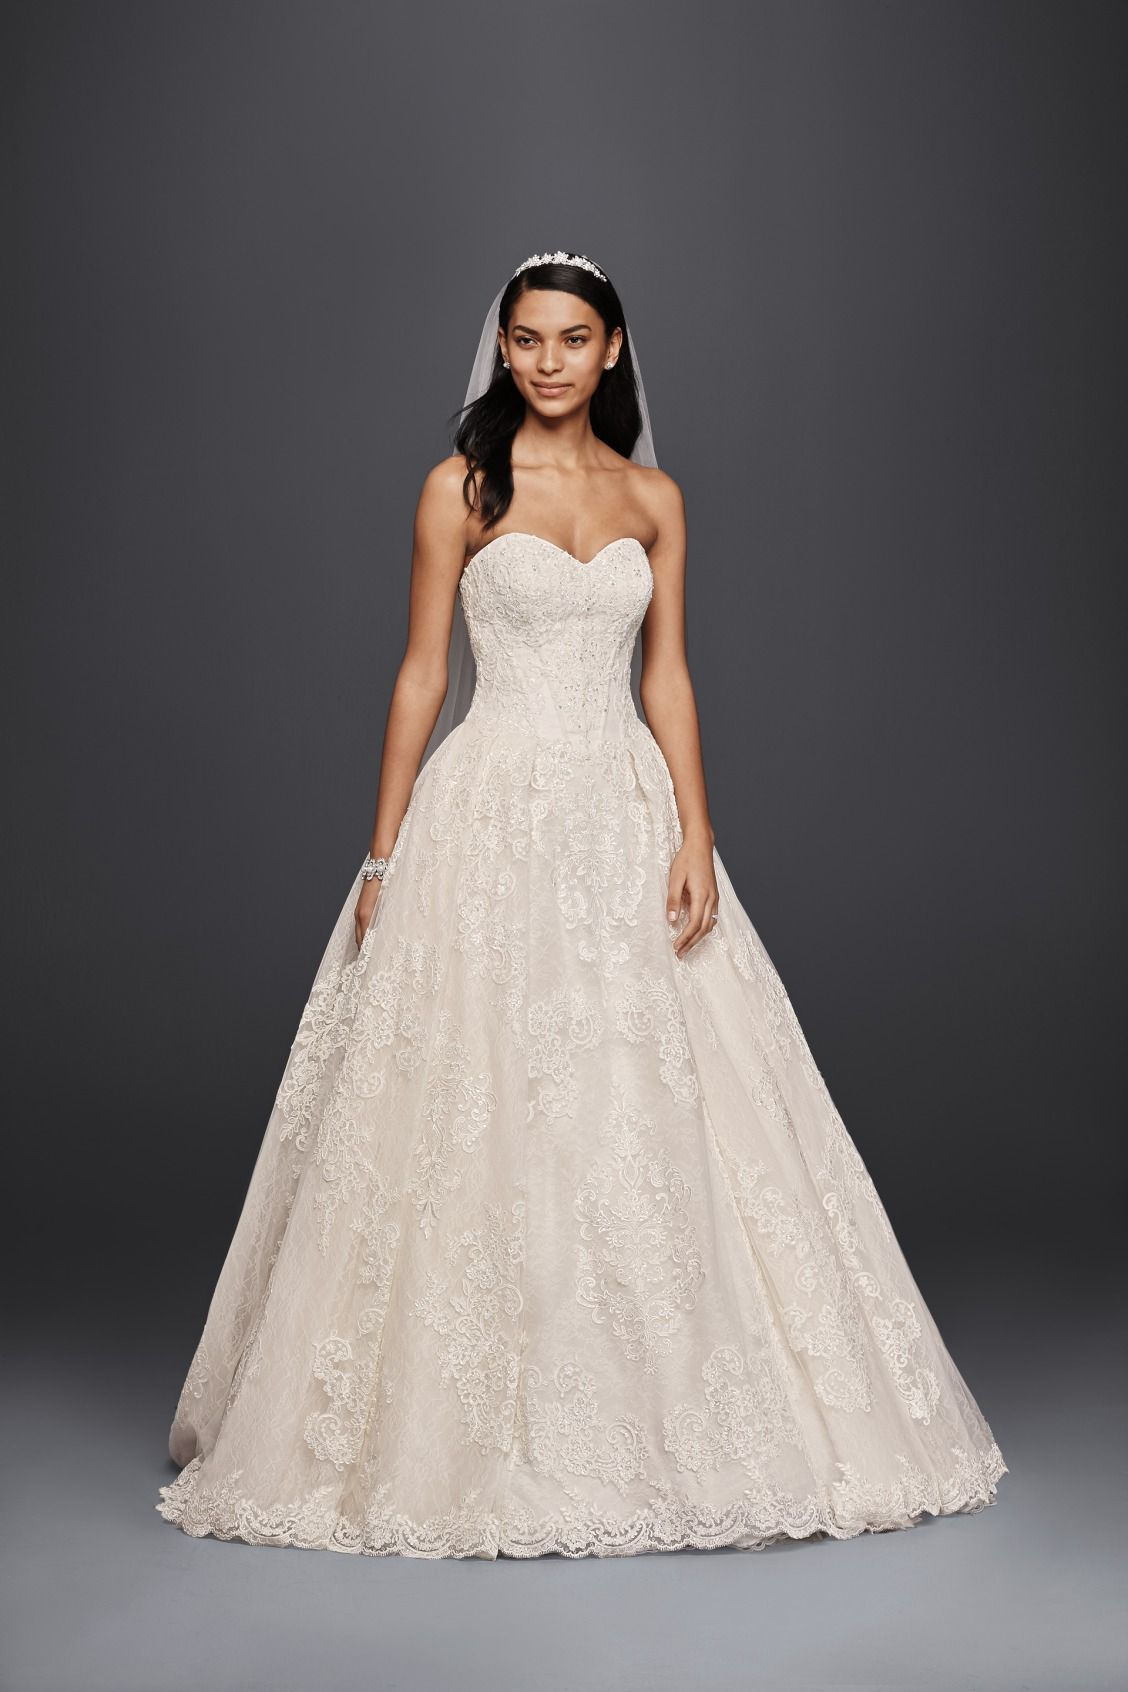 76a7b2055c02 Strapless Sweetheart Beaded Lace Ball Gown Oleg Cassini Wedding Dress at  David's Bridal